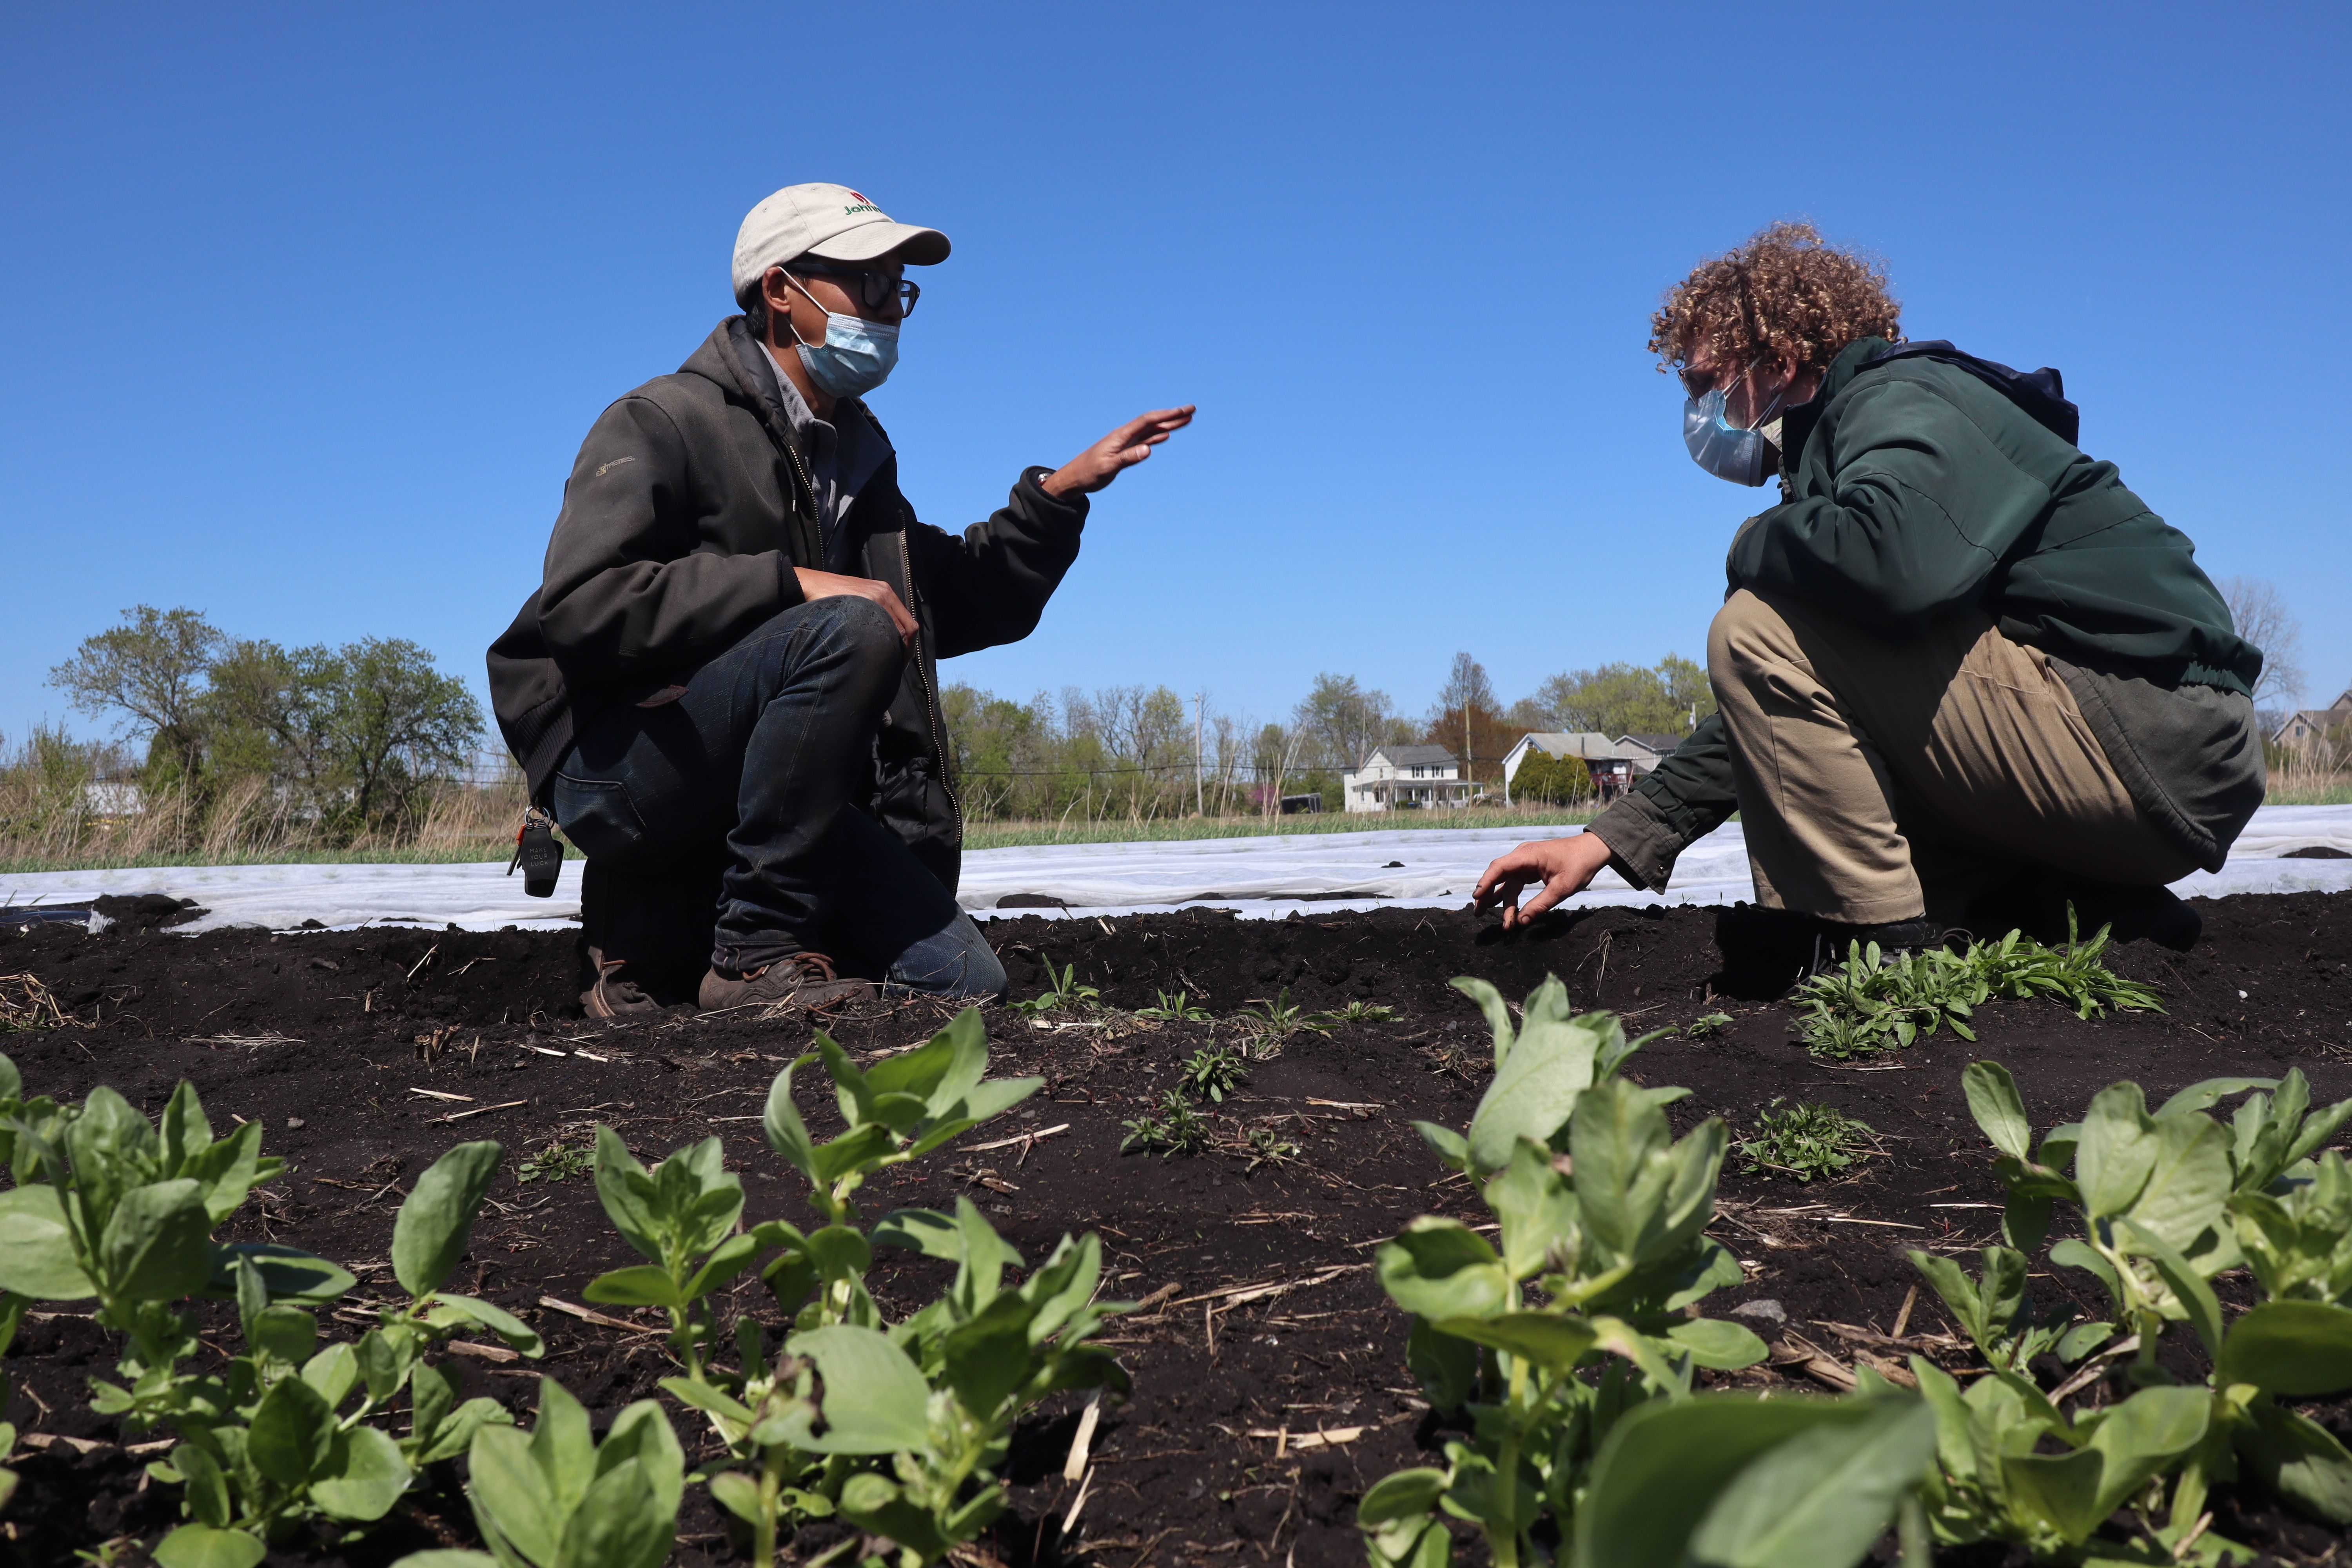 Training Farmers, one Tour at a Time